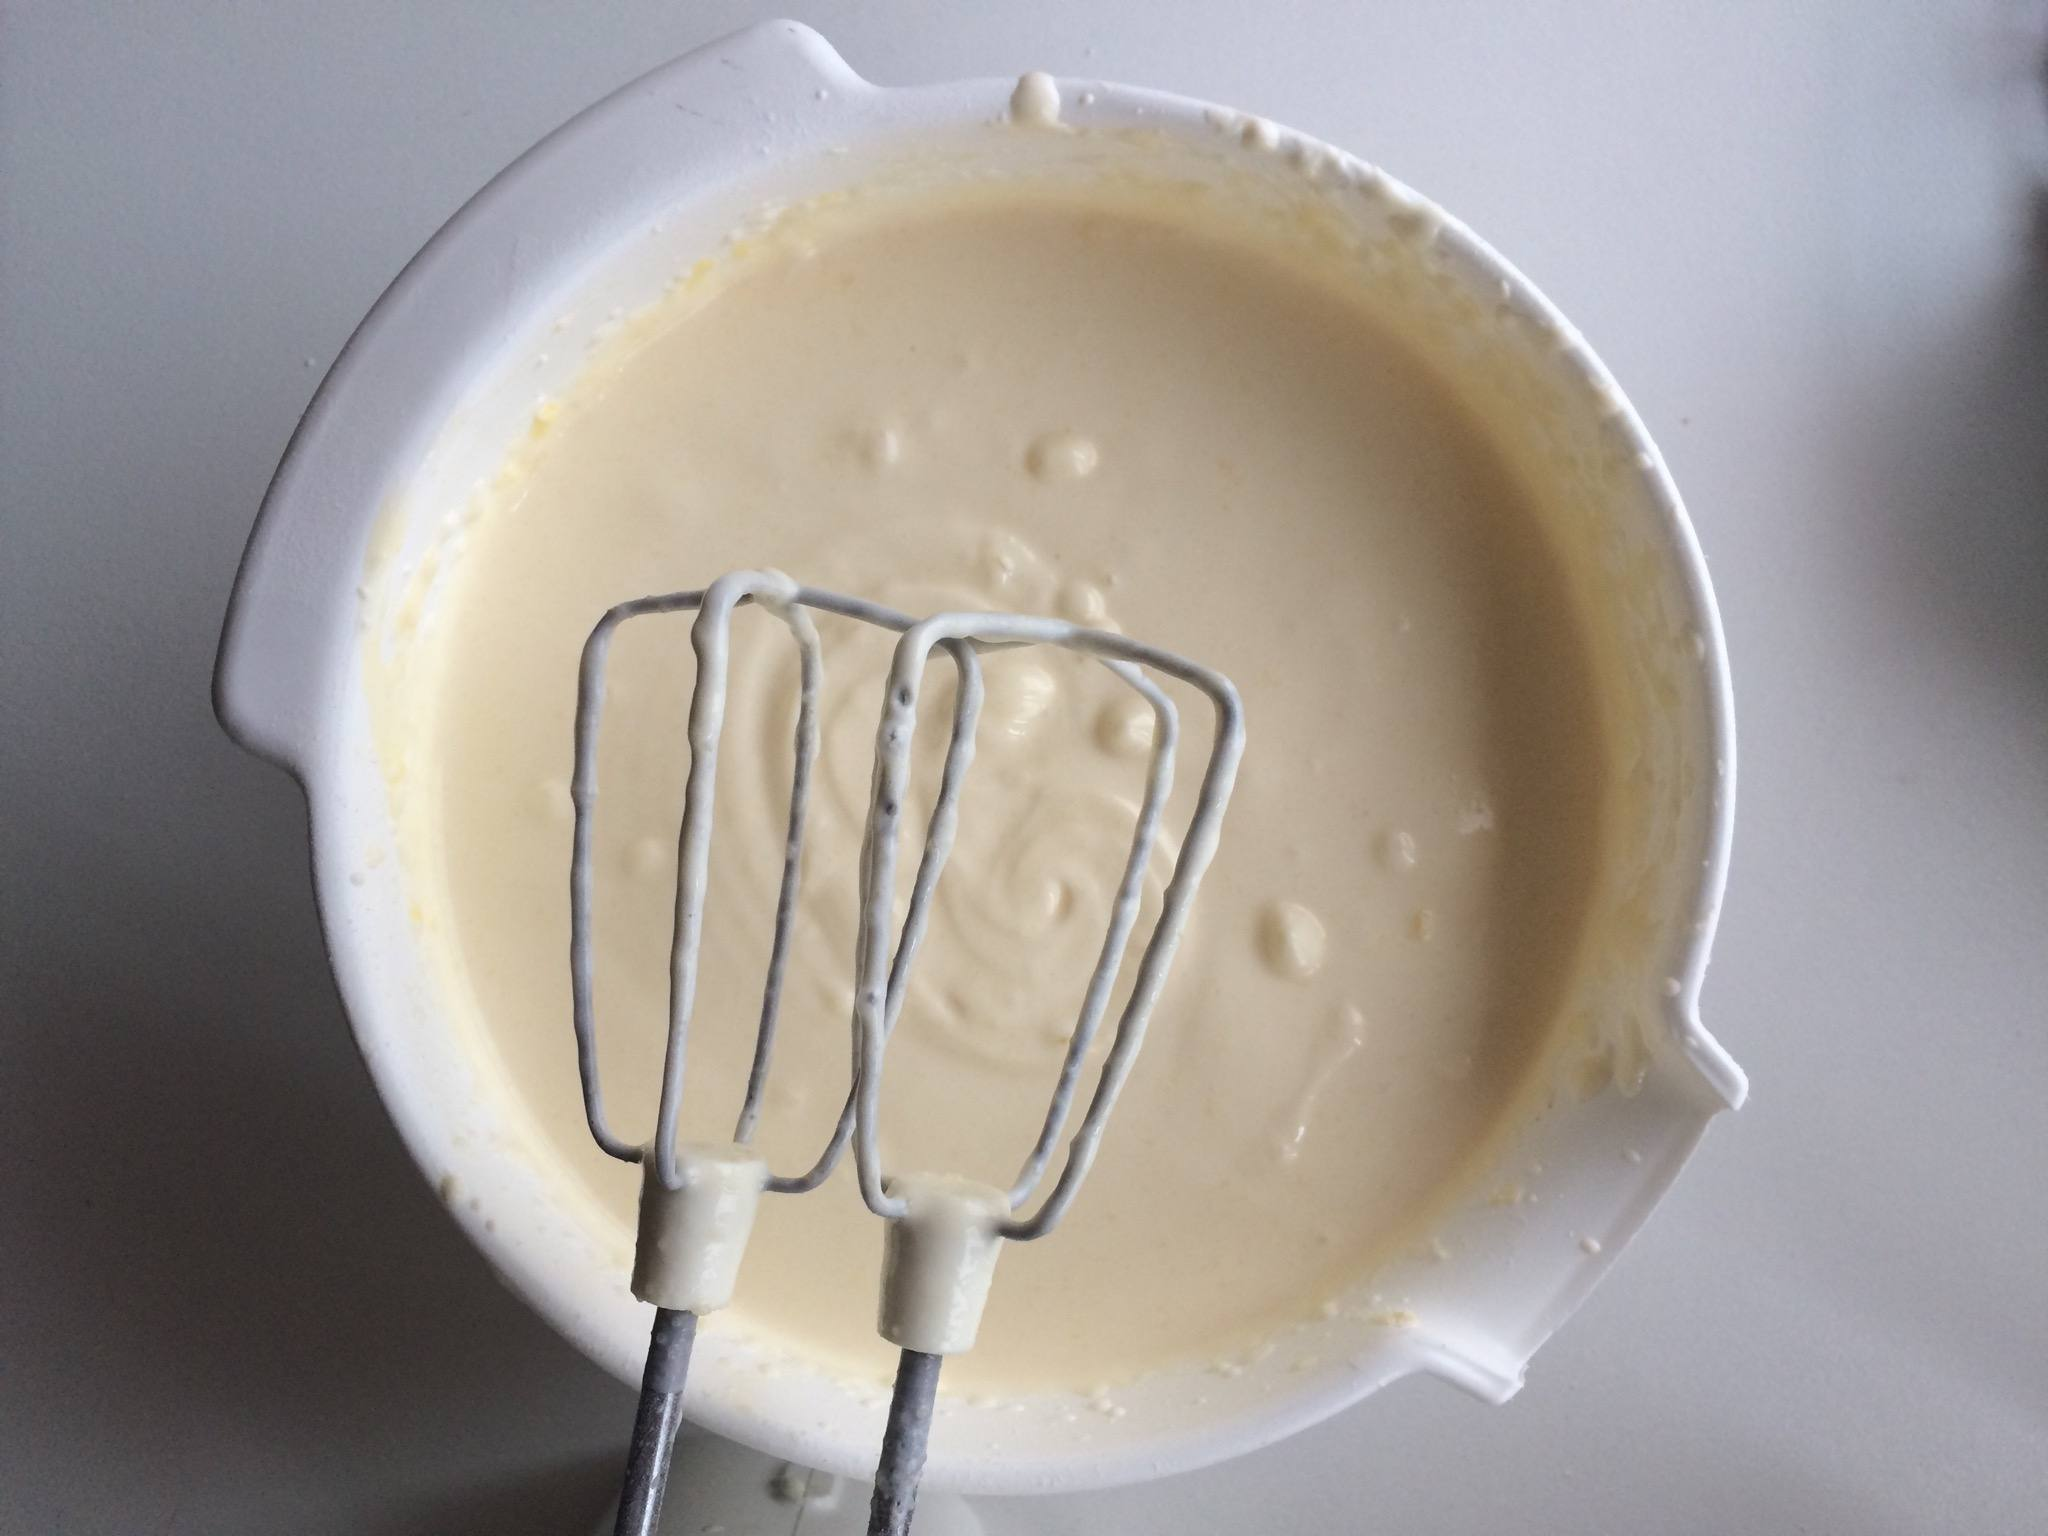 Batter and electric mixer